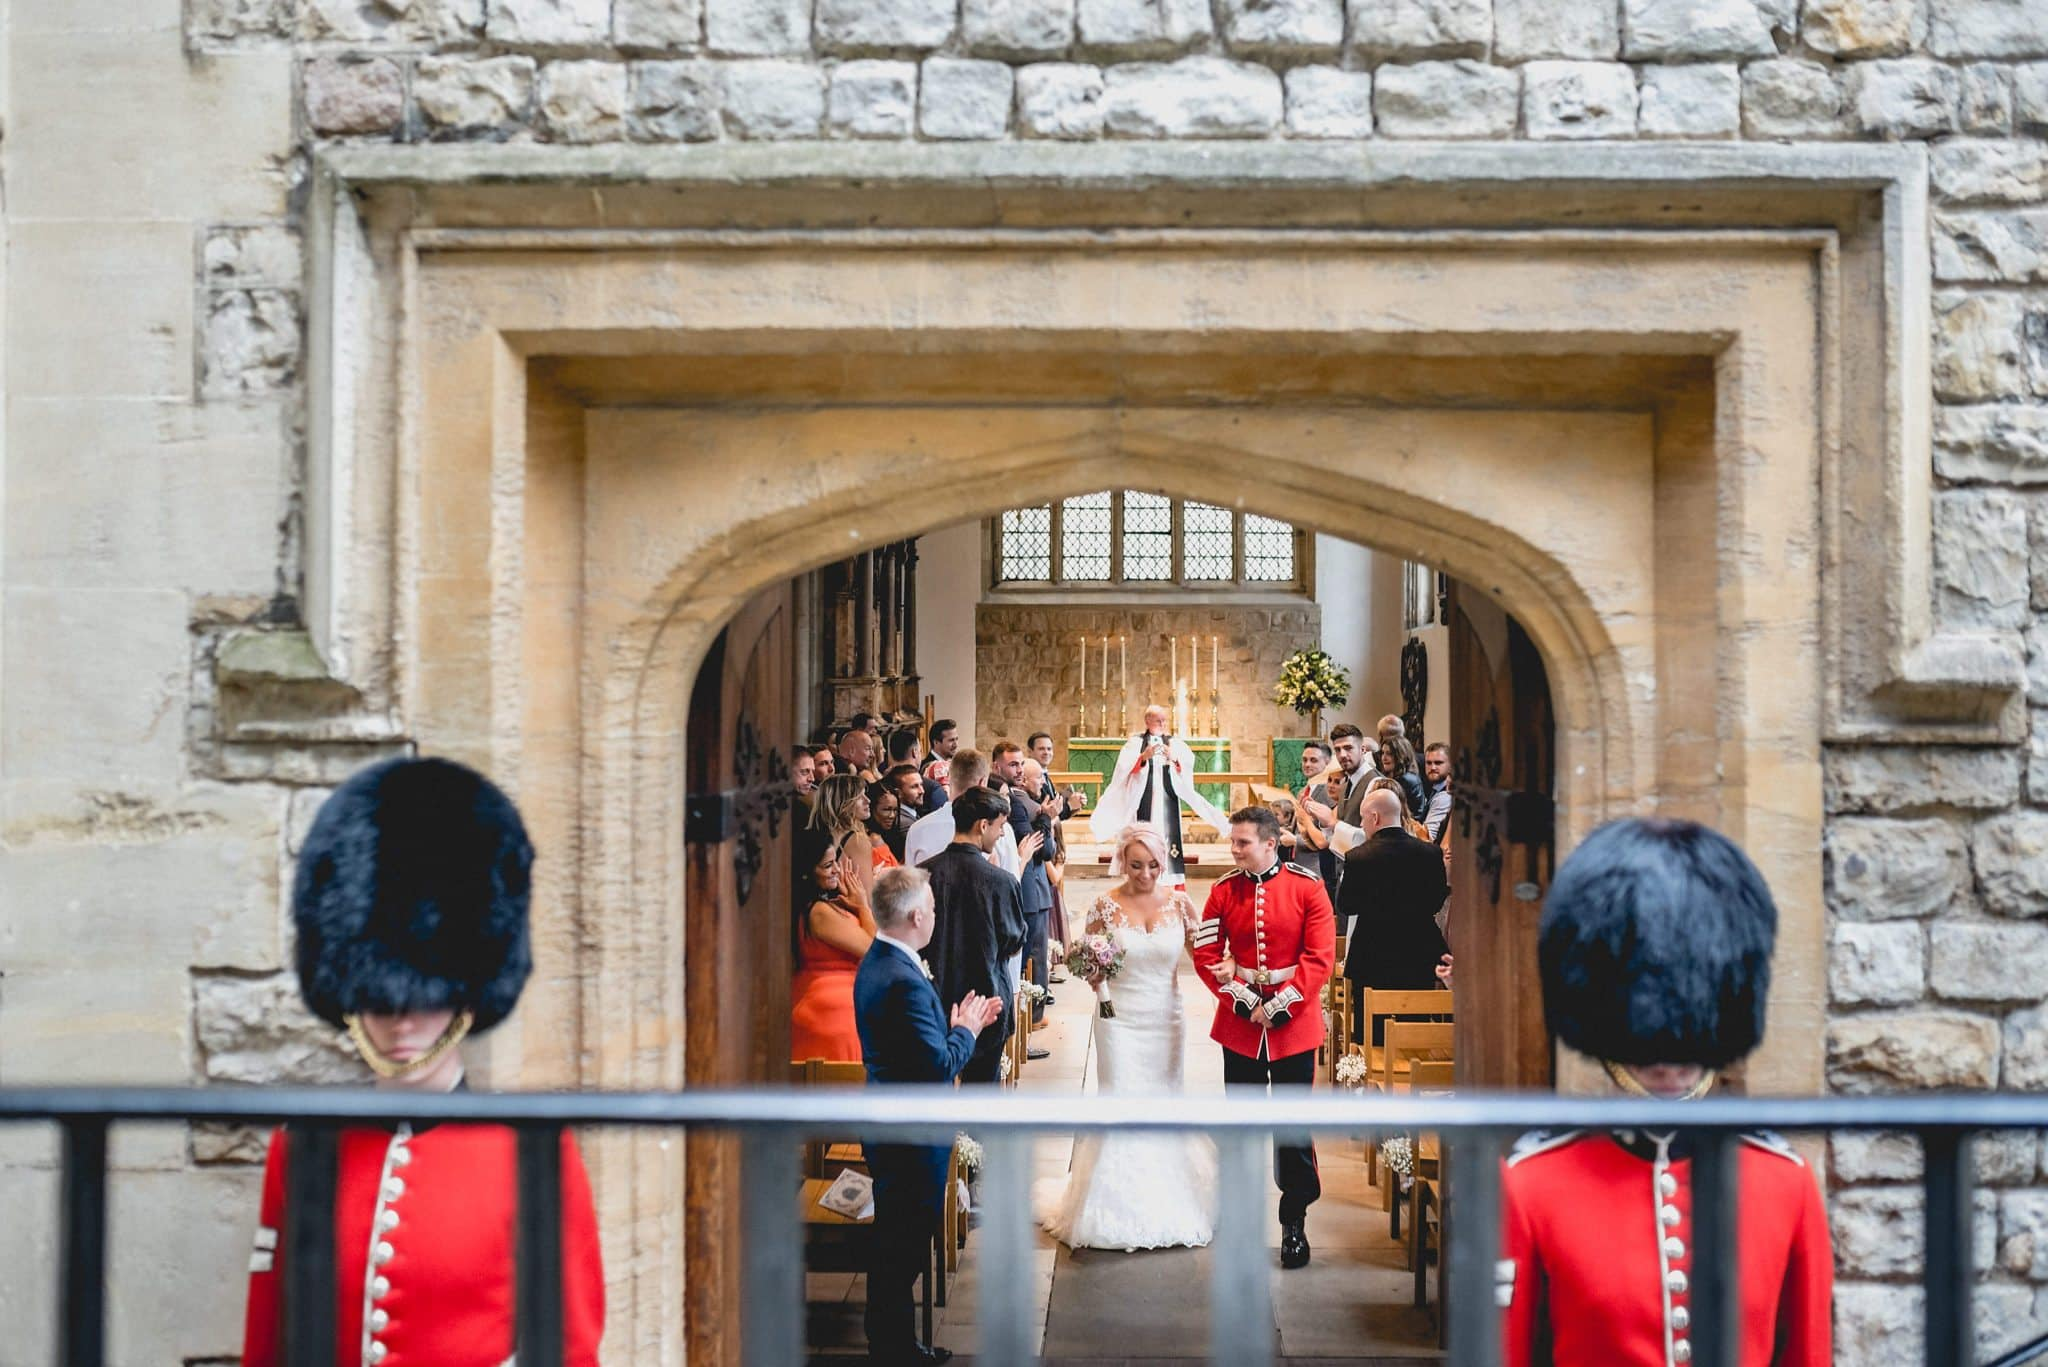 Bride and groom exit the Tower of London after their wedding ceremony. The door is guarded by two of the Royal Guard in full regalia.